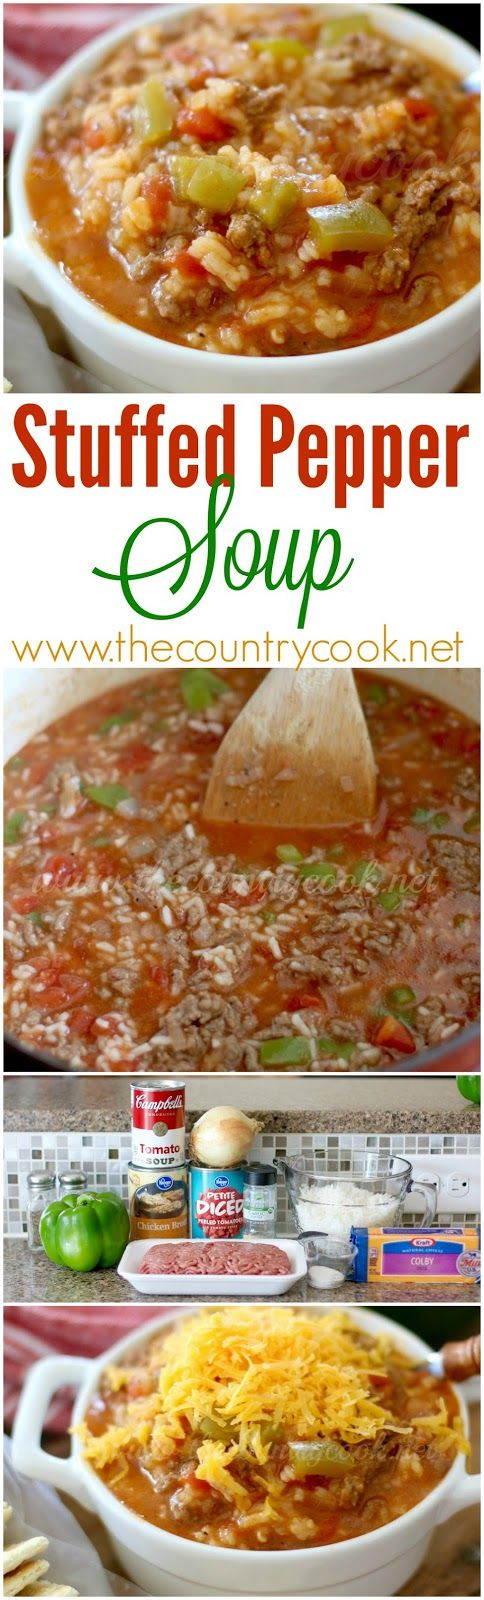 The Best Stuffed Pepper Soup Video The Country Cook Recipe Stuffed Peppers Soup Recipes Stuffed Pepper Soup